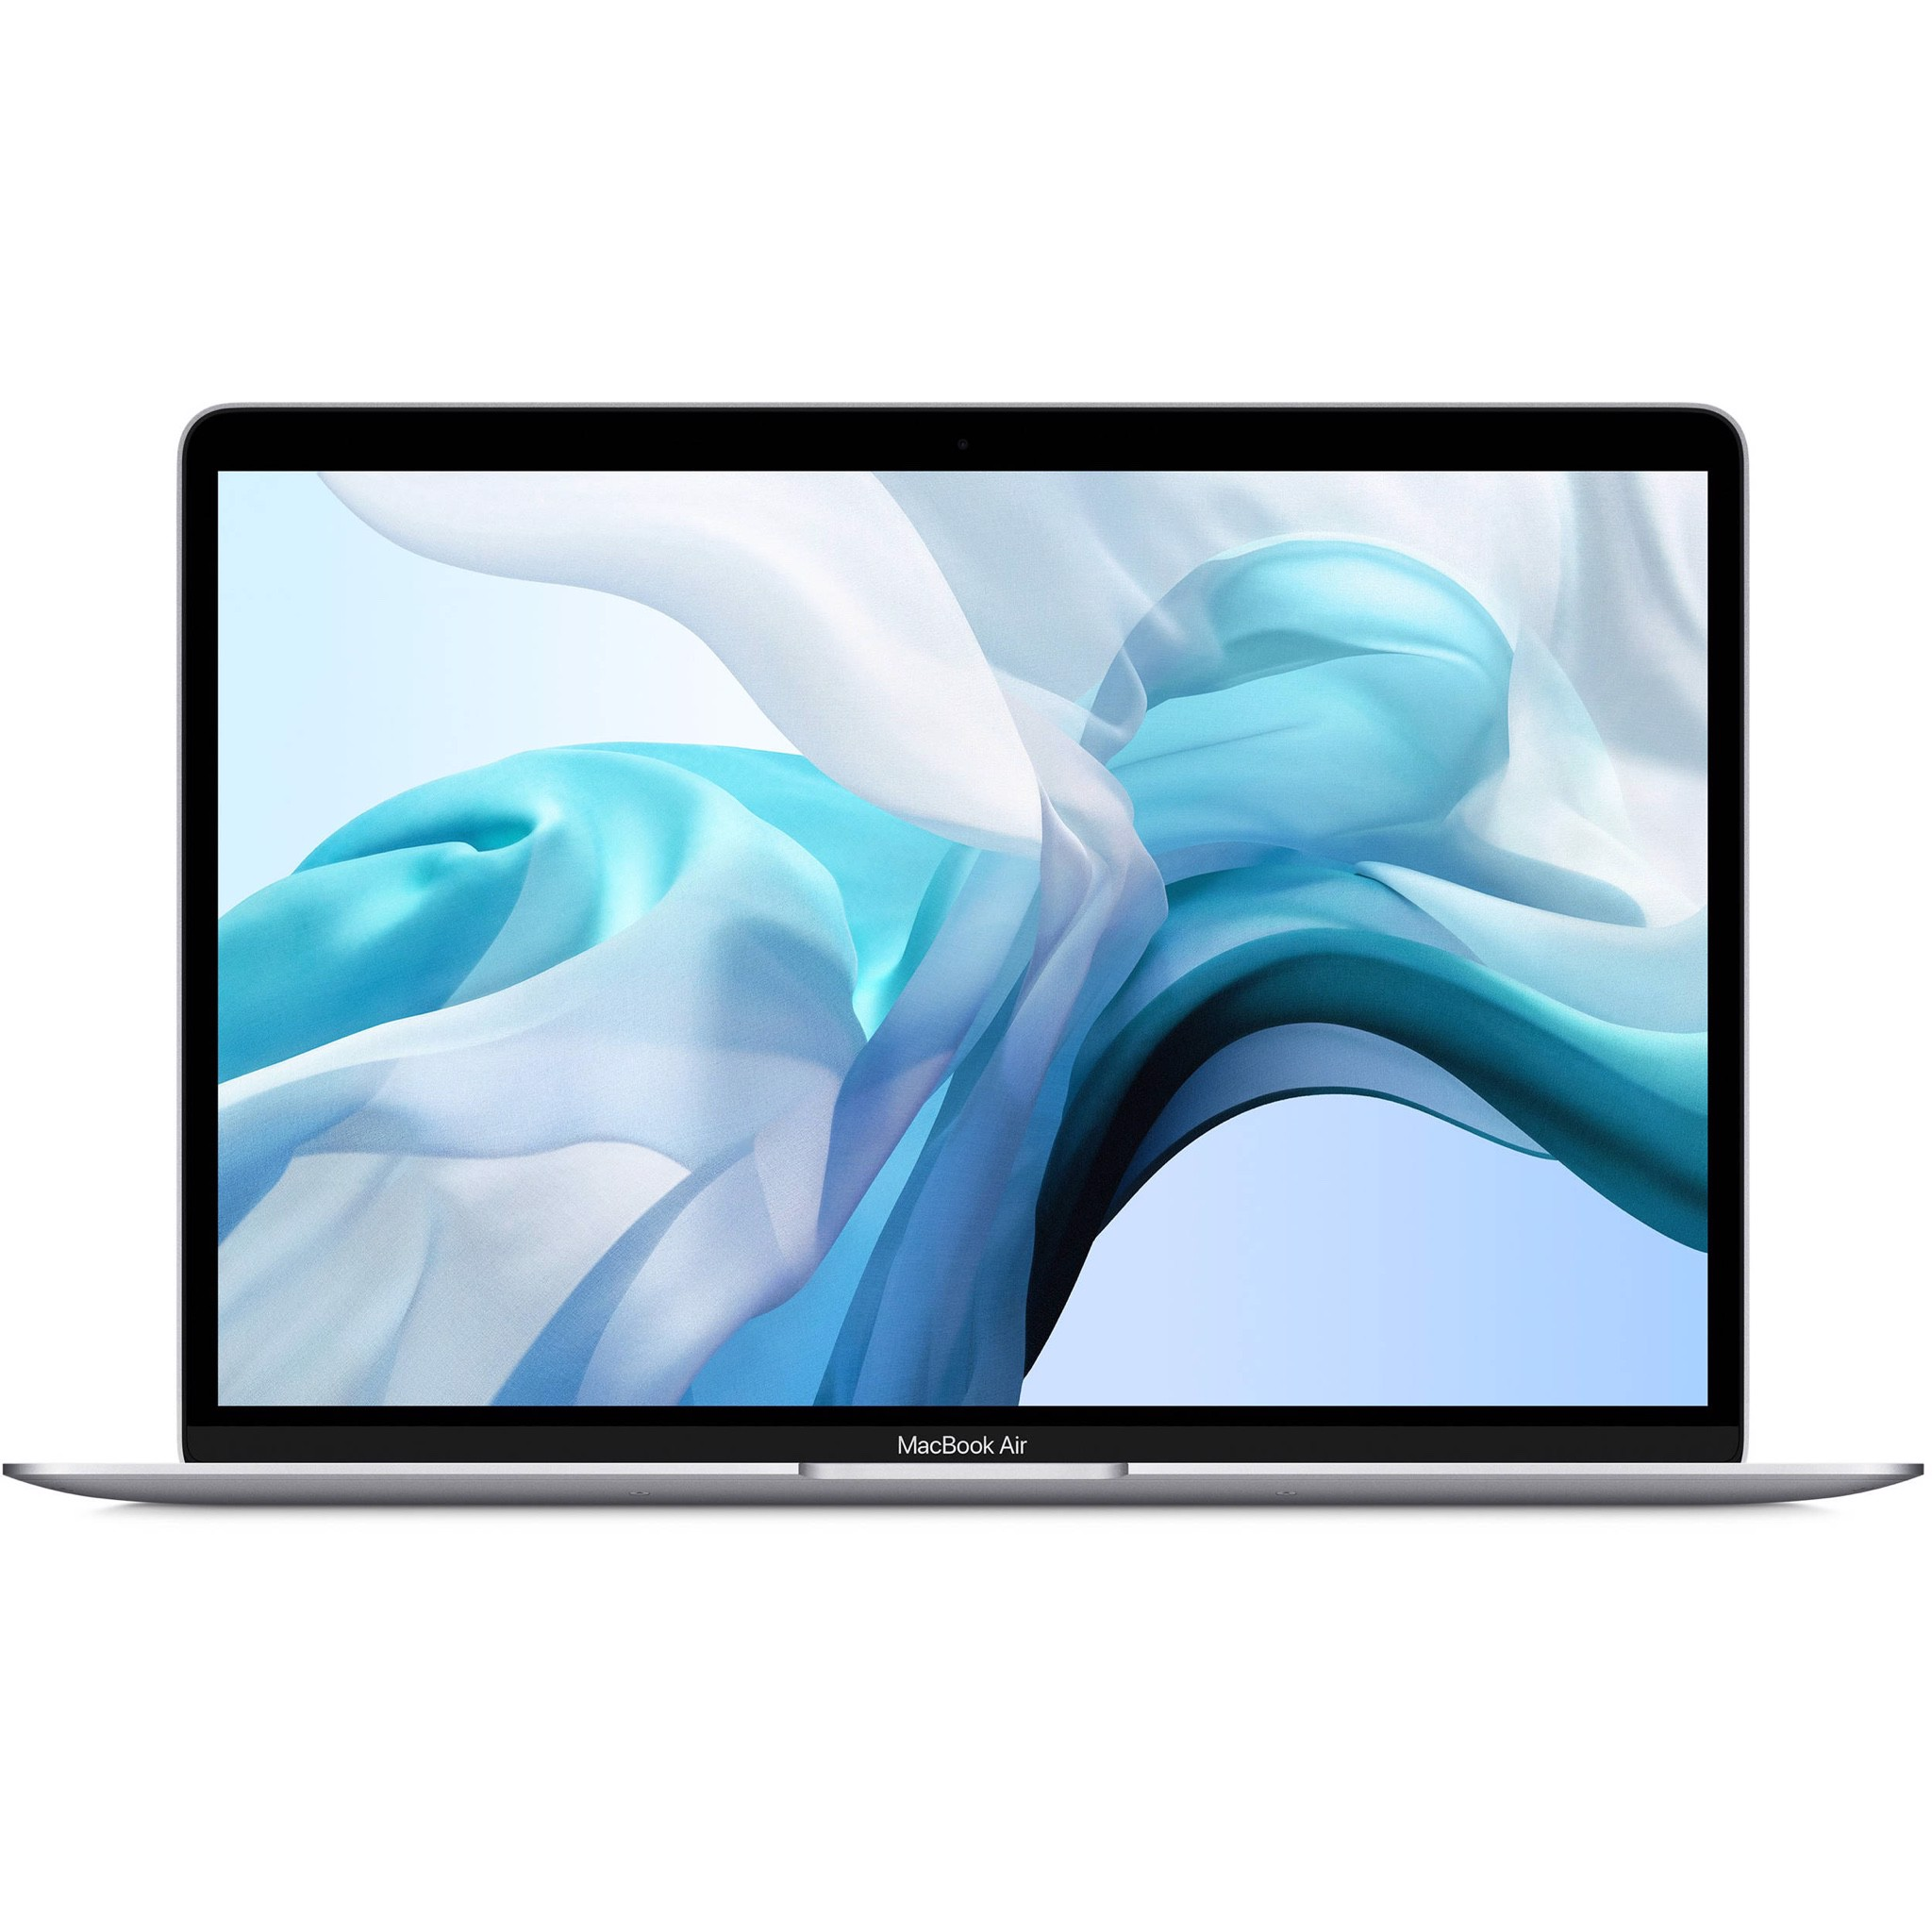 MVH42 - MACBOOK AIR 2020 NEW 100%